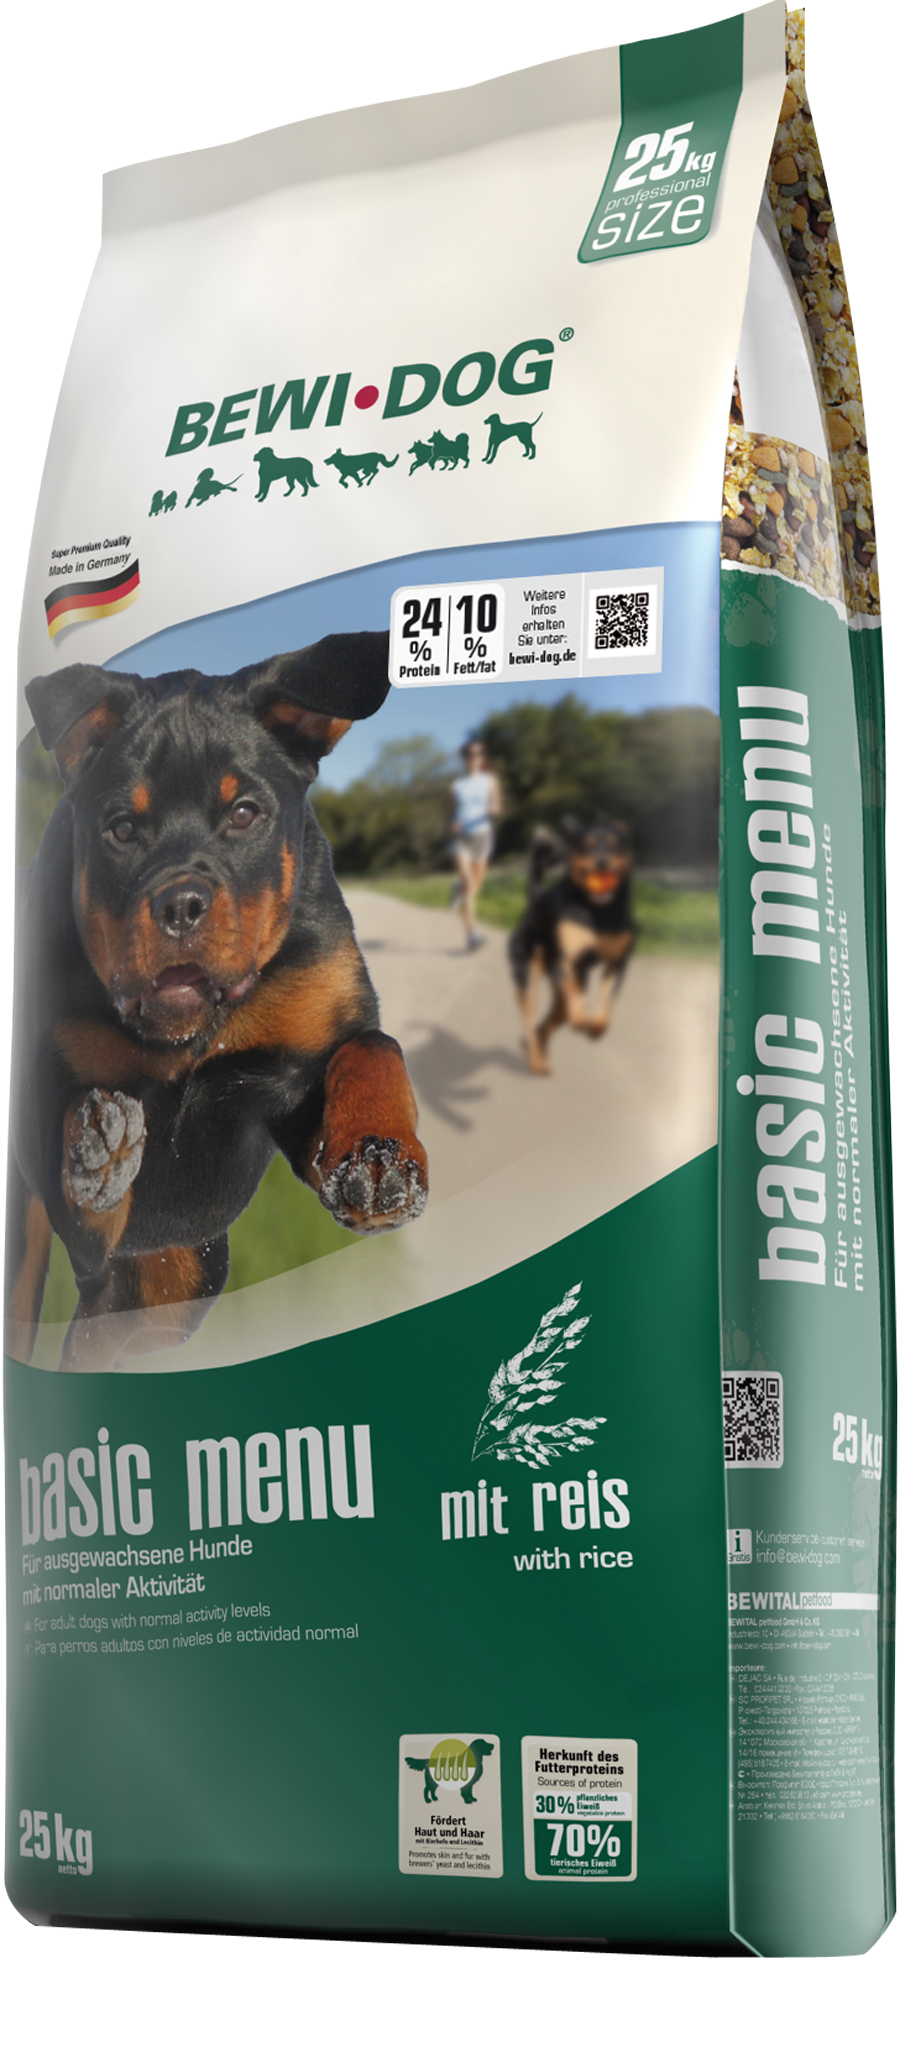 Bewidog-basic-menu-25kg-re